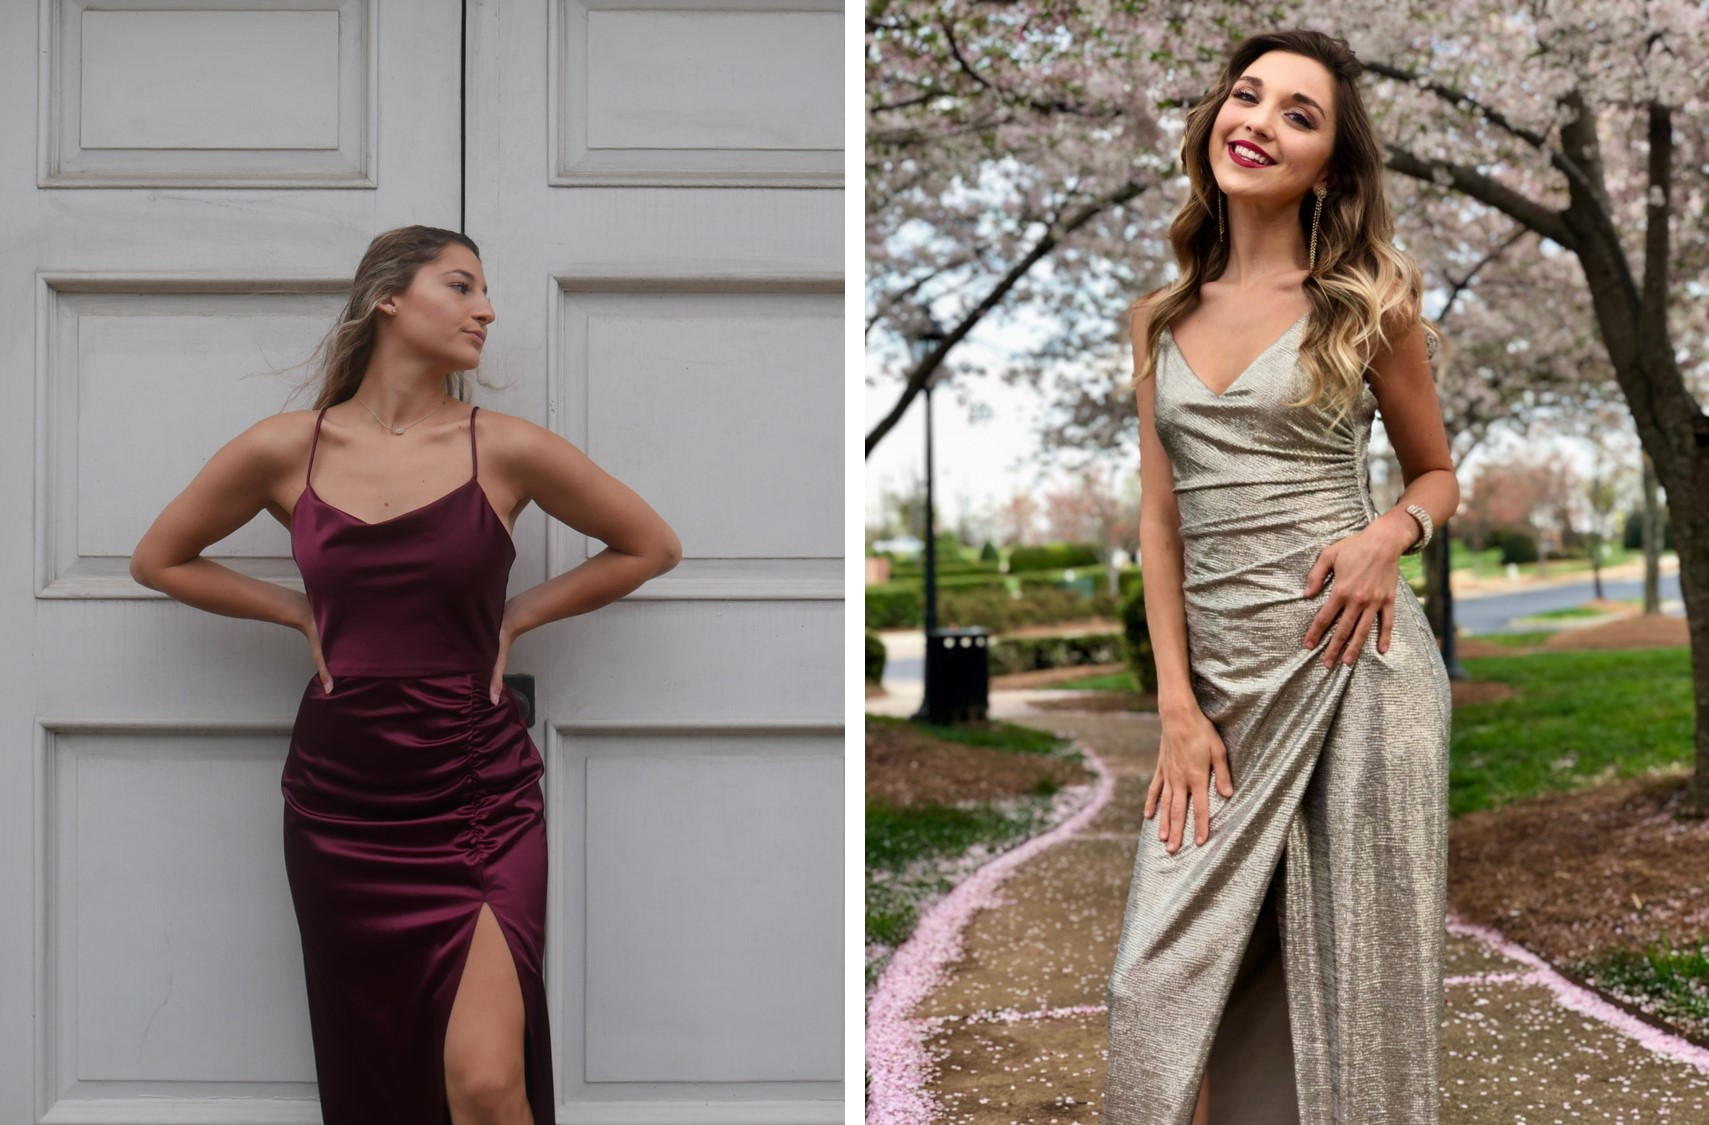 Two college aged girls in slinky sheath silhouette dresses